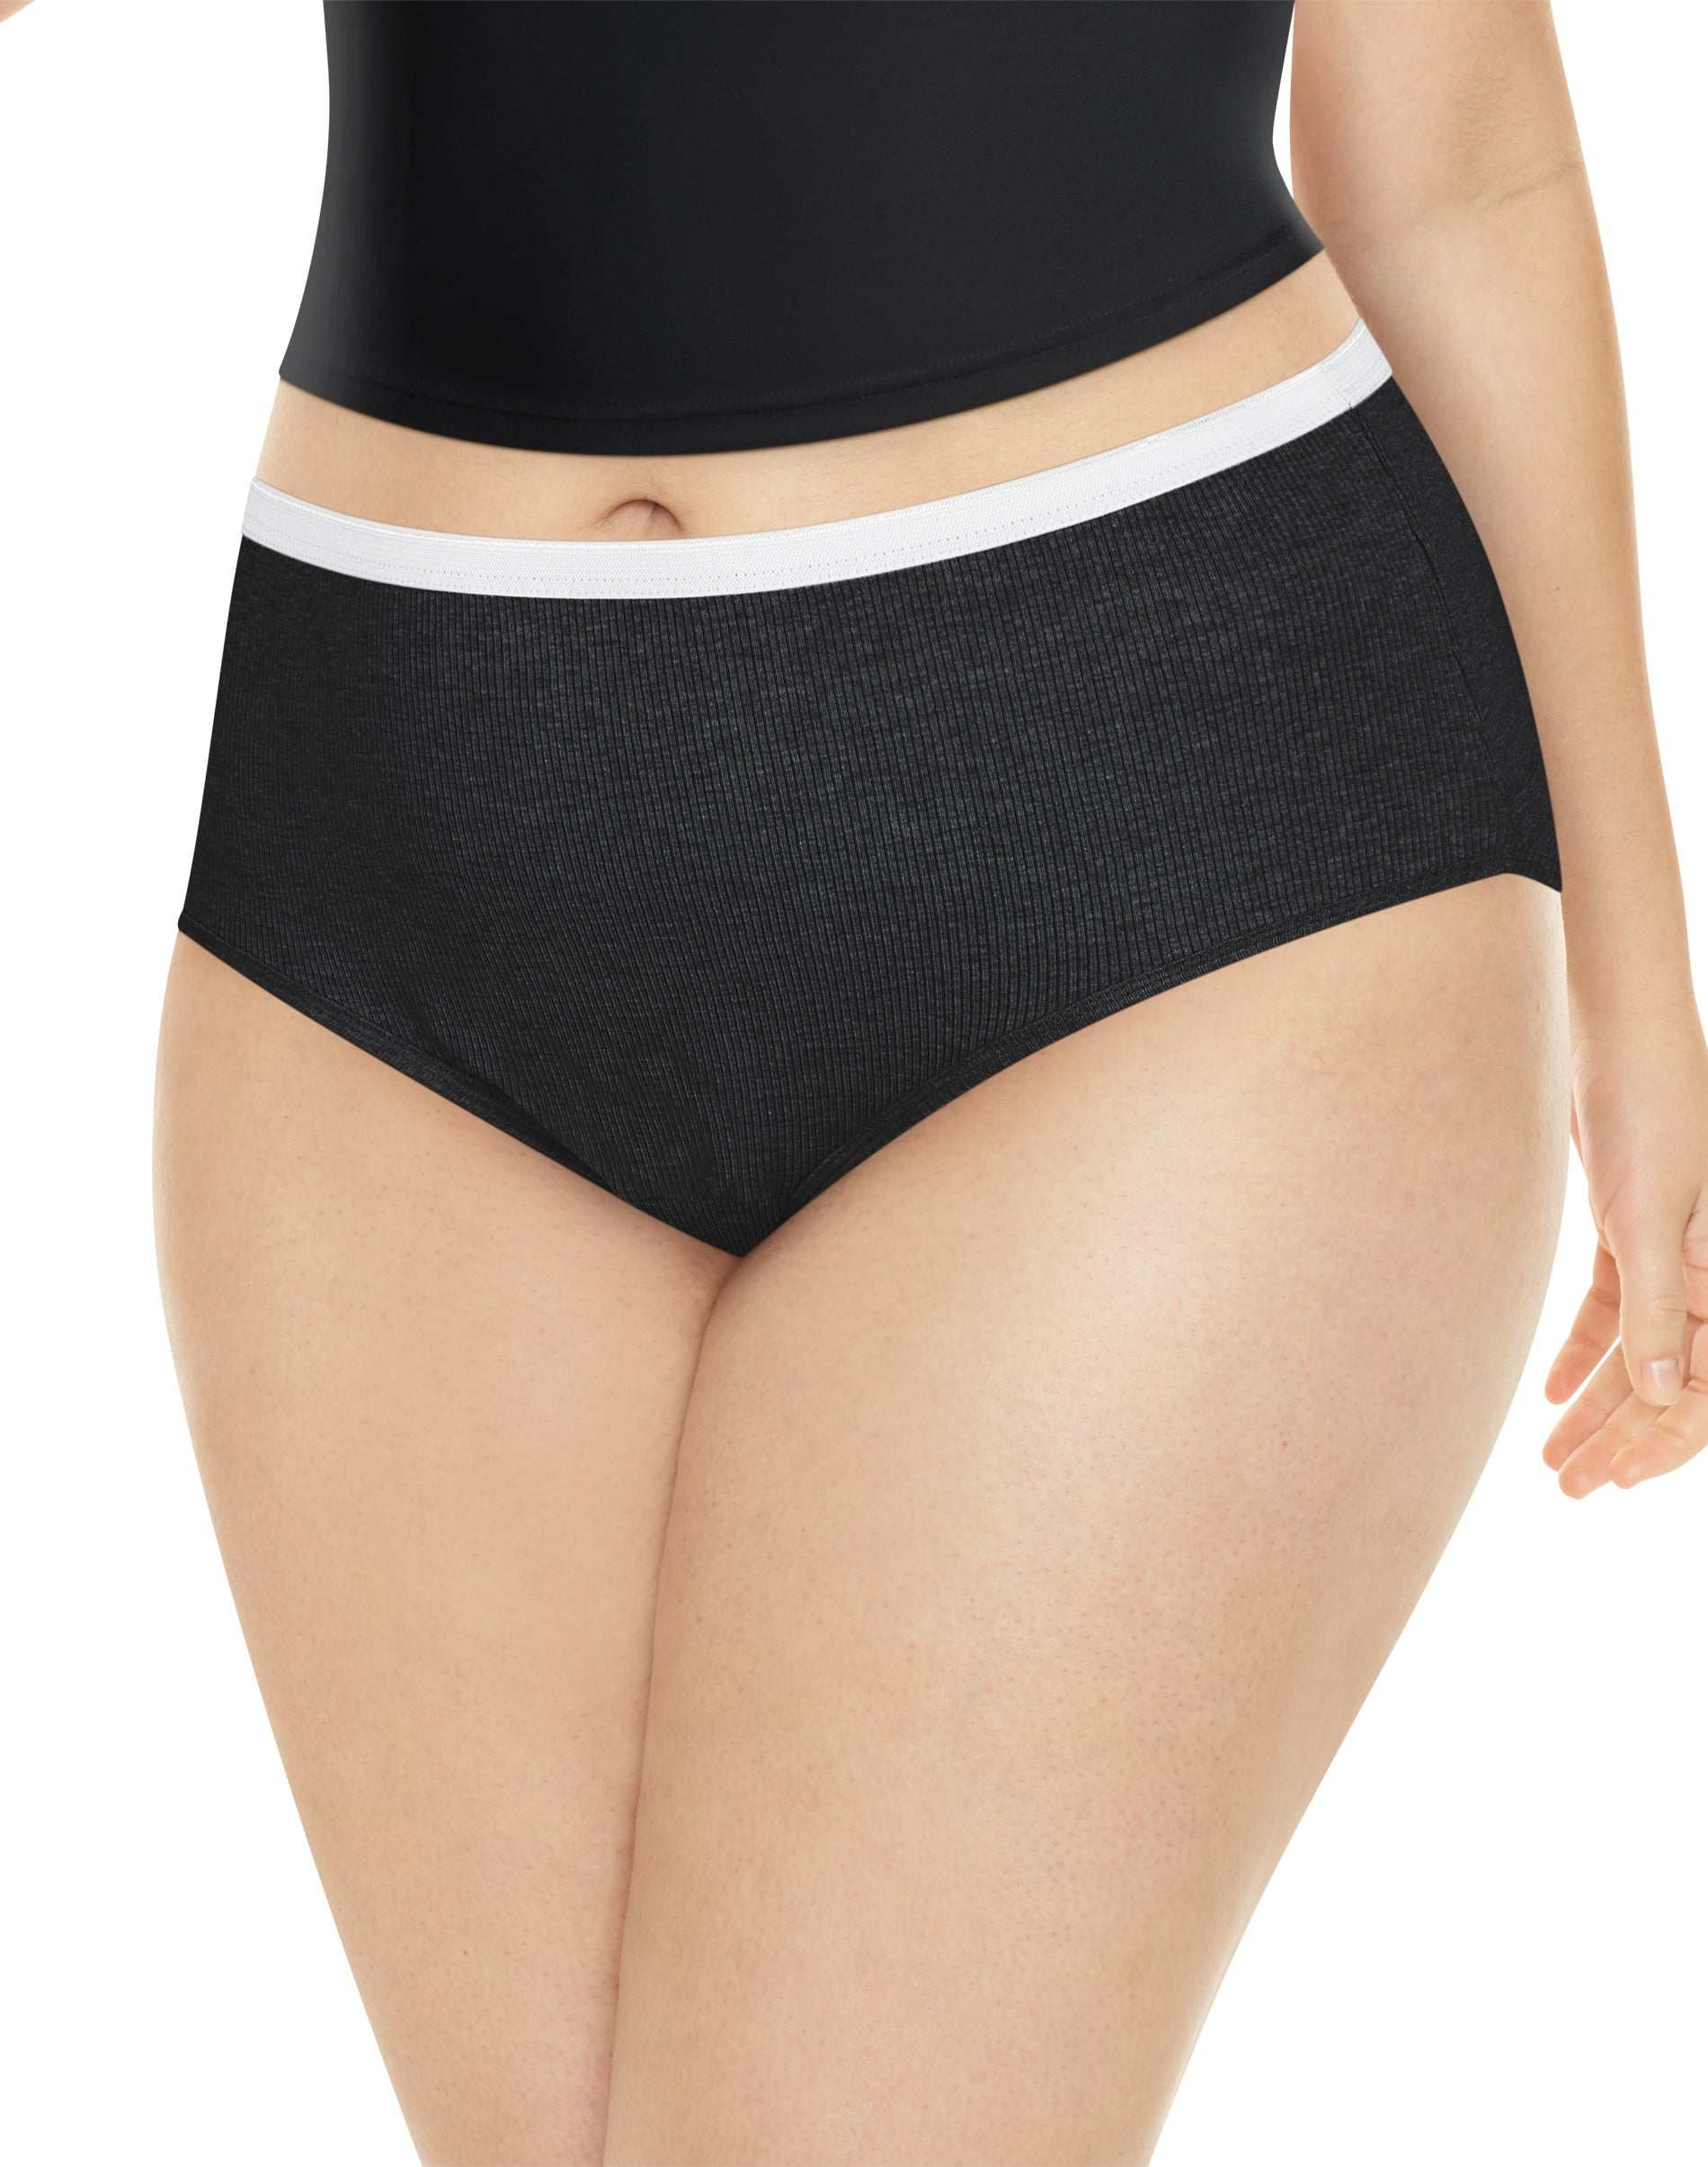 Just My Size Women/'s Plus 5-Pack Cotton High Brief All Sizes 9-14